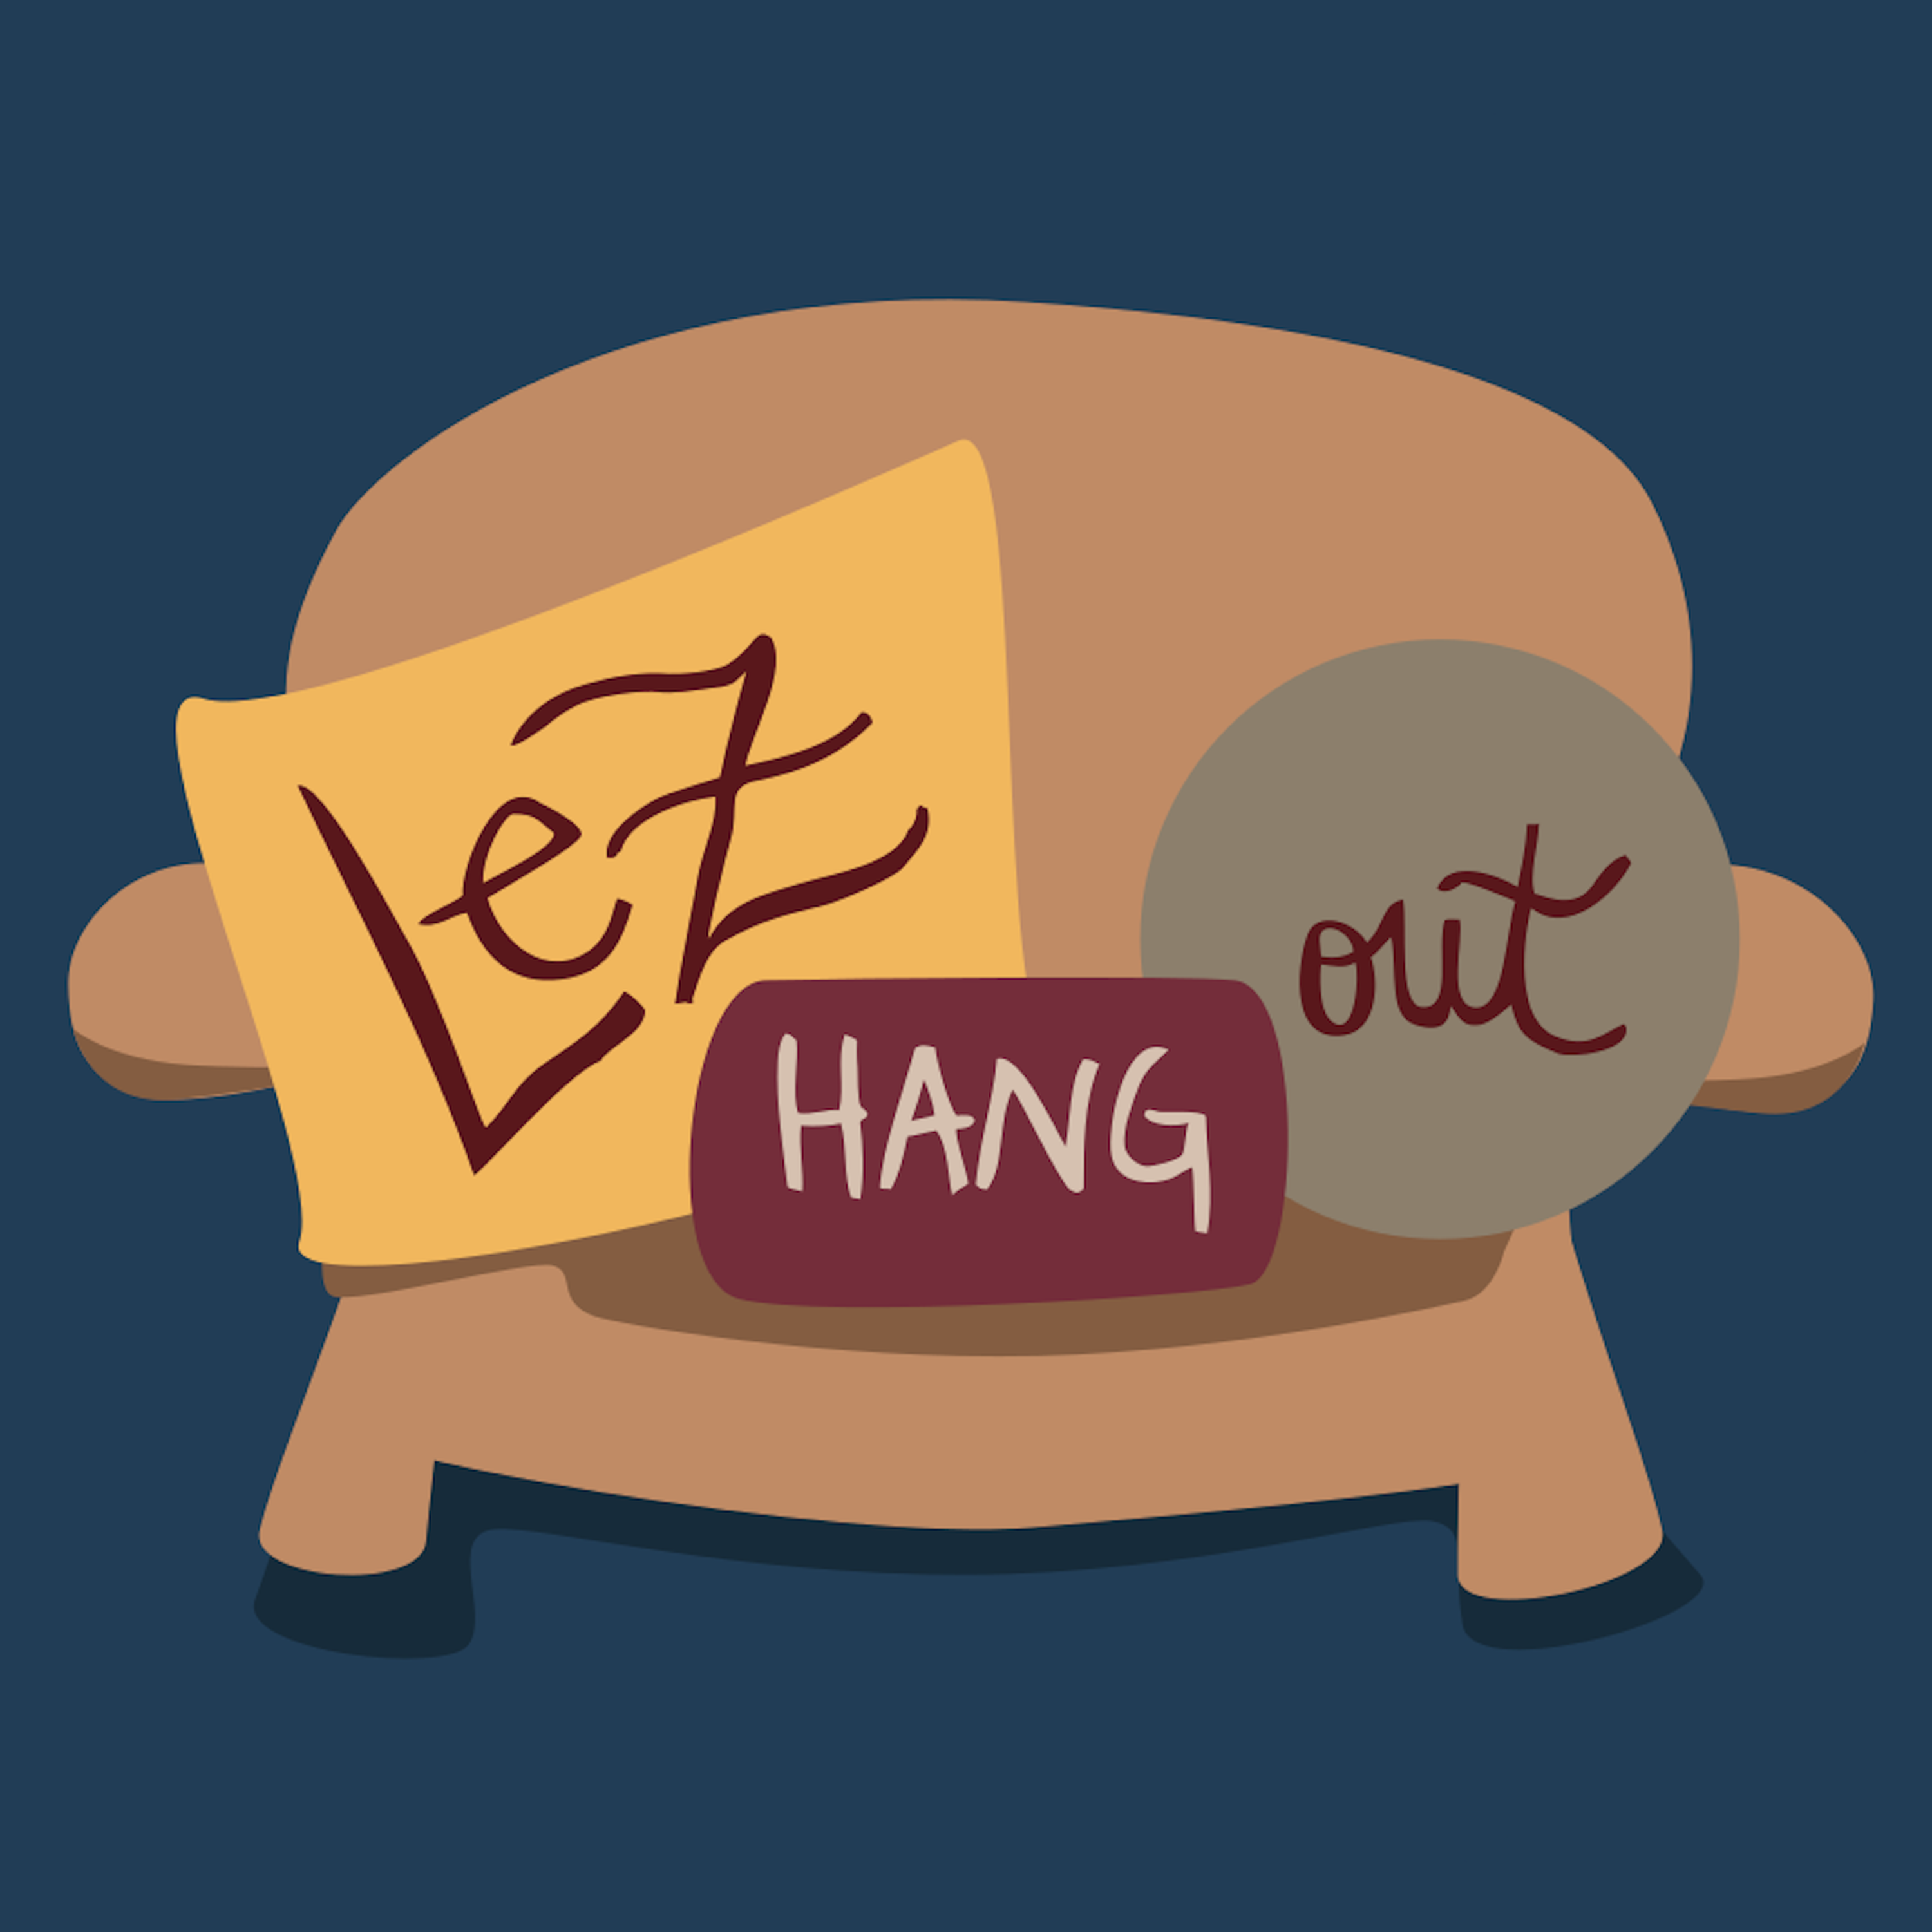 Lez Hang Out | A Lesbian Podcast - 109: Le Crushing Queer Content with Barbelle - An interview with Karen Knox and Gwenlyn Cumyn